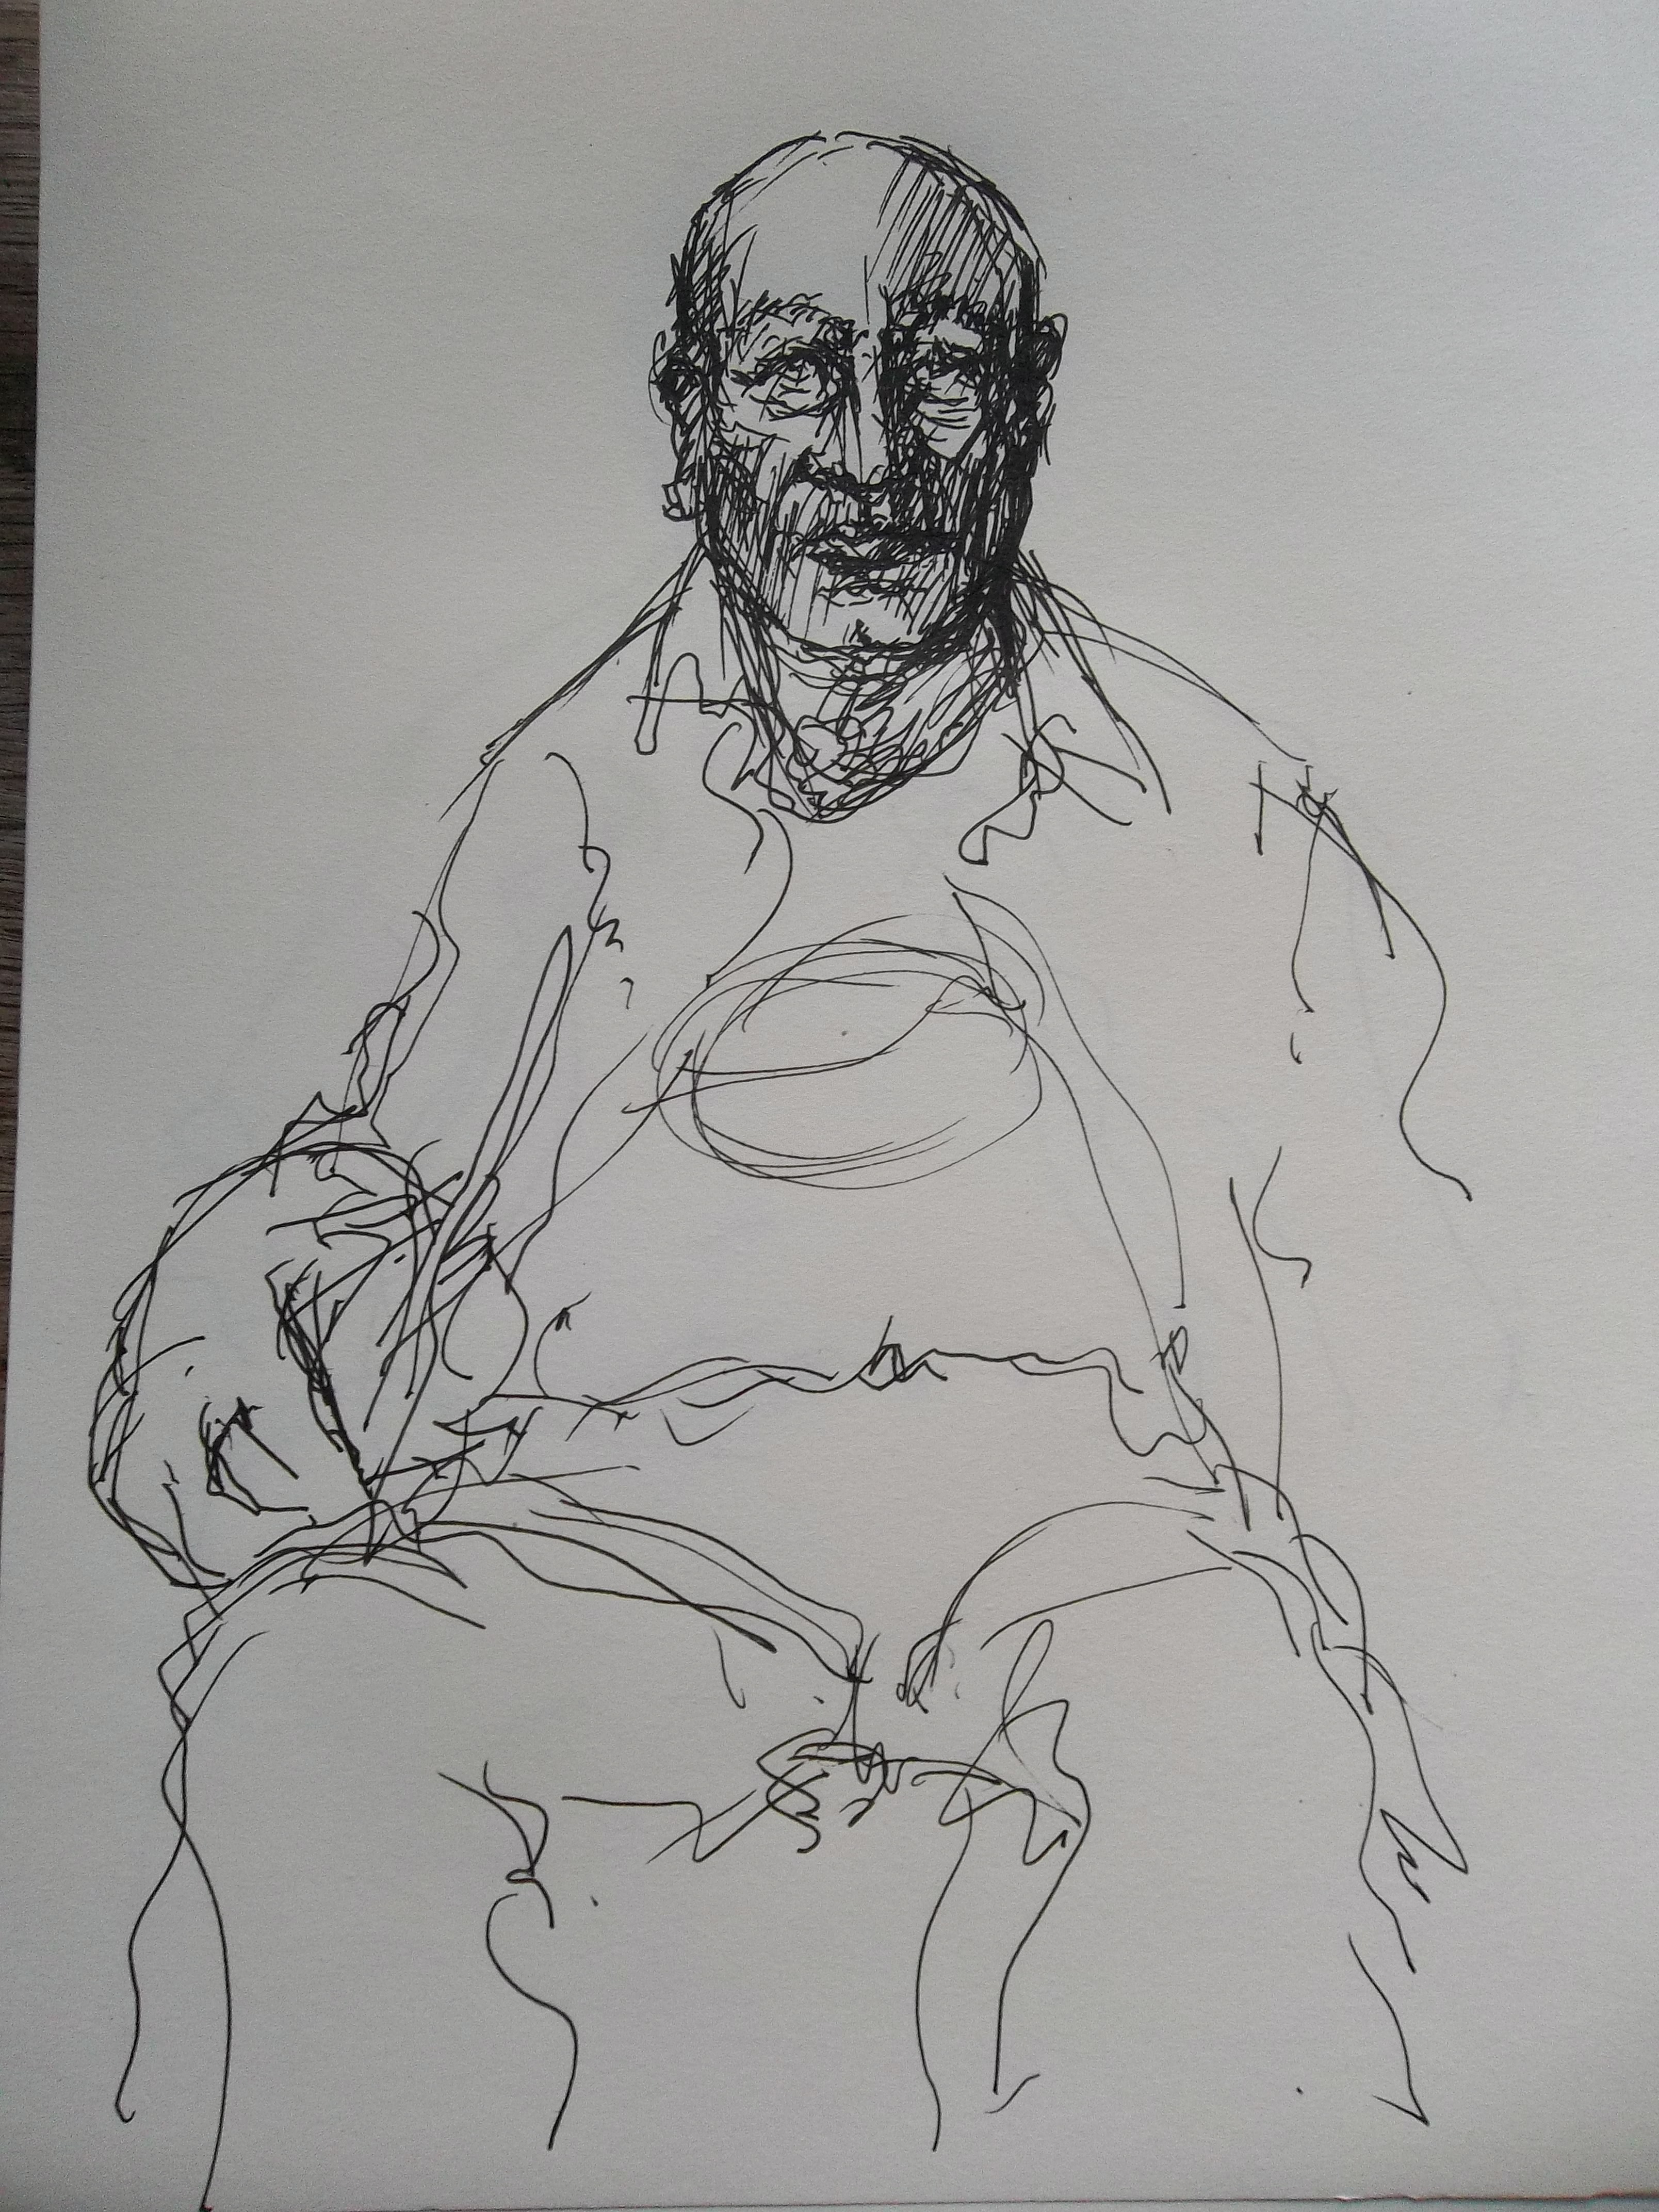 Man sitting in chair drawing - Image